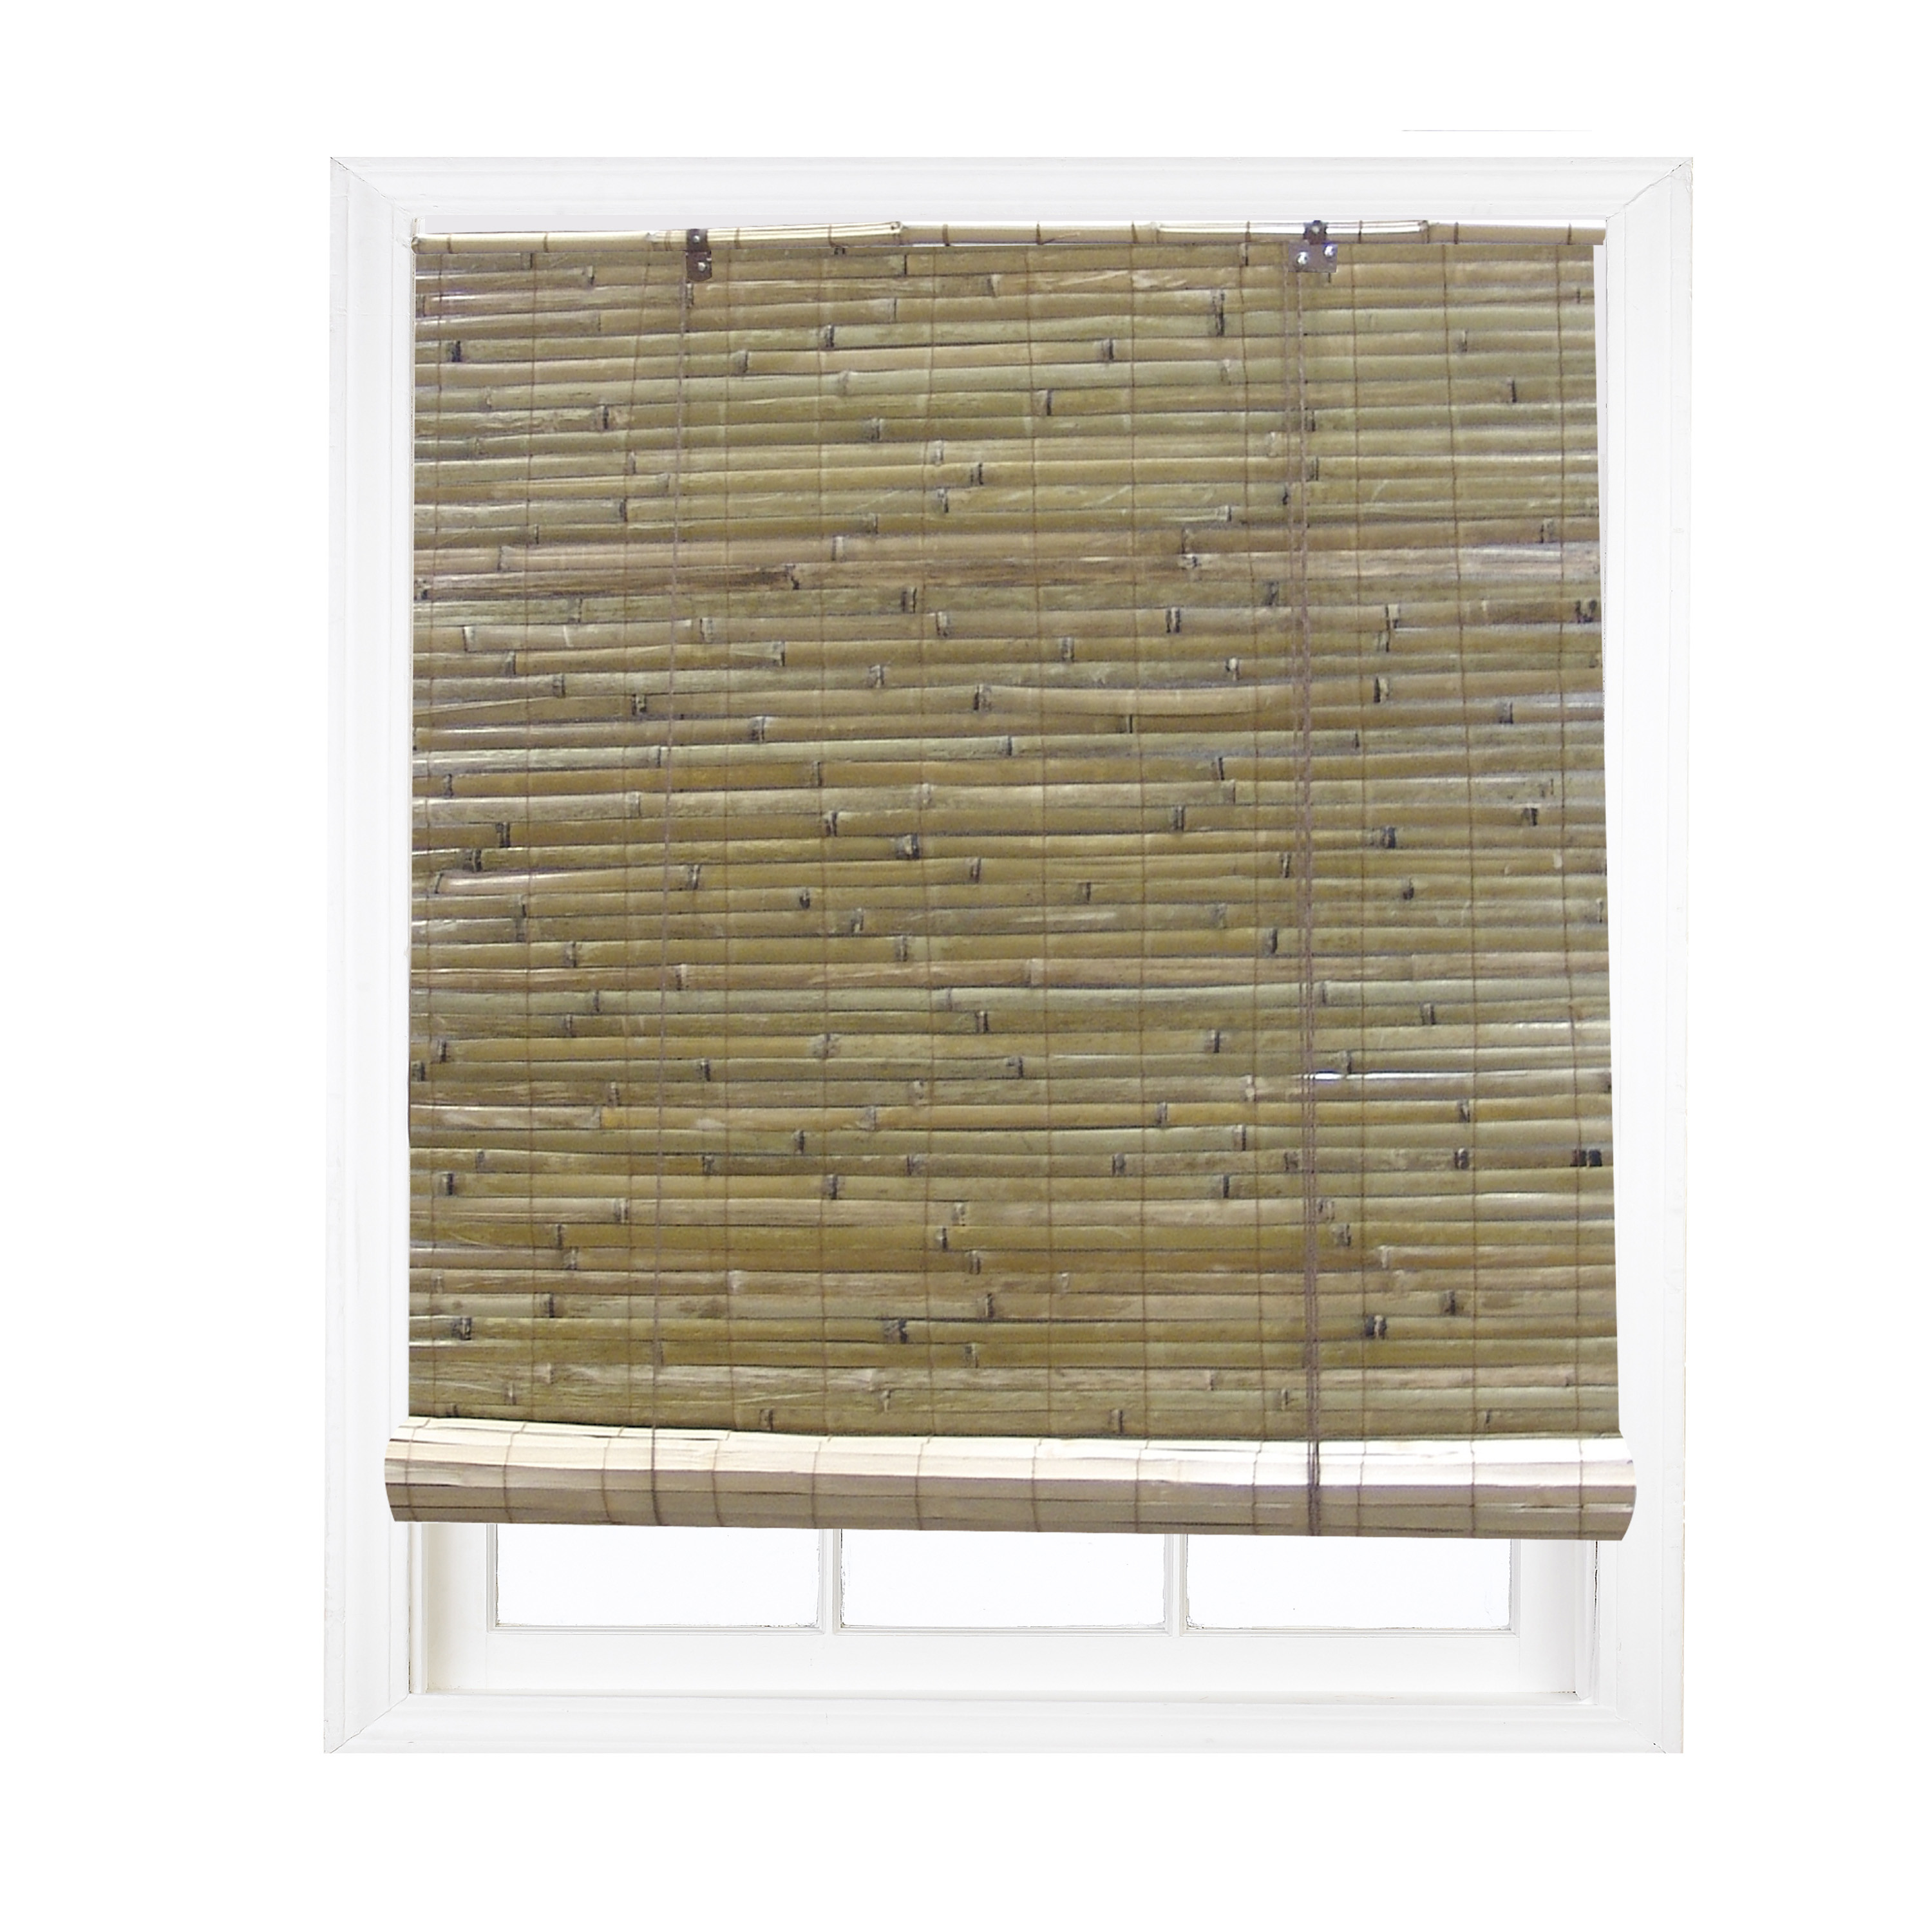 Excellent Menards Window Blinds for Best Window Blind Ideas: Window Blinds At Menards | Shop Vac Menards | Menards Window Blinds